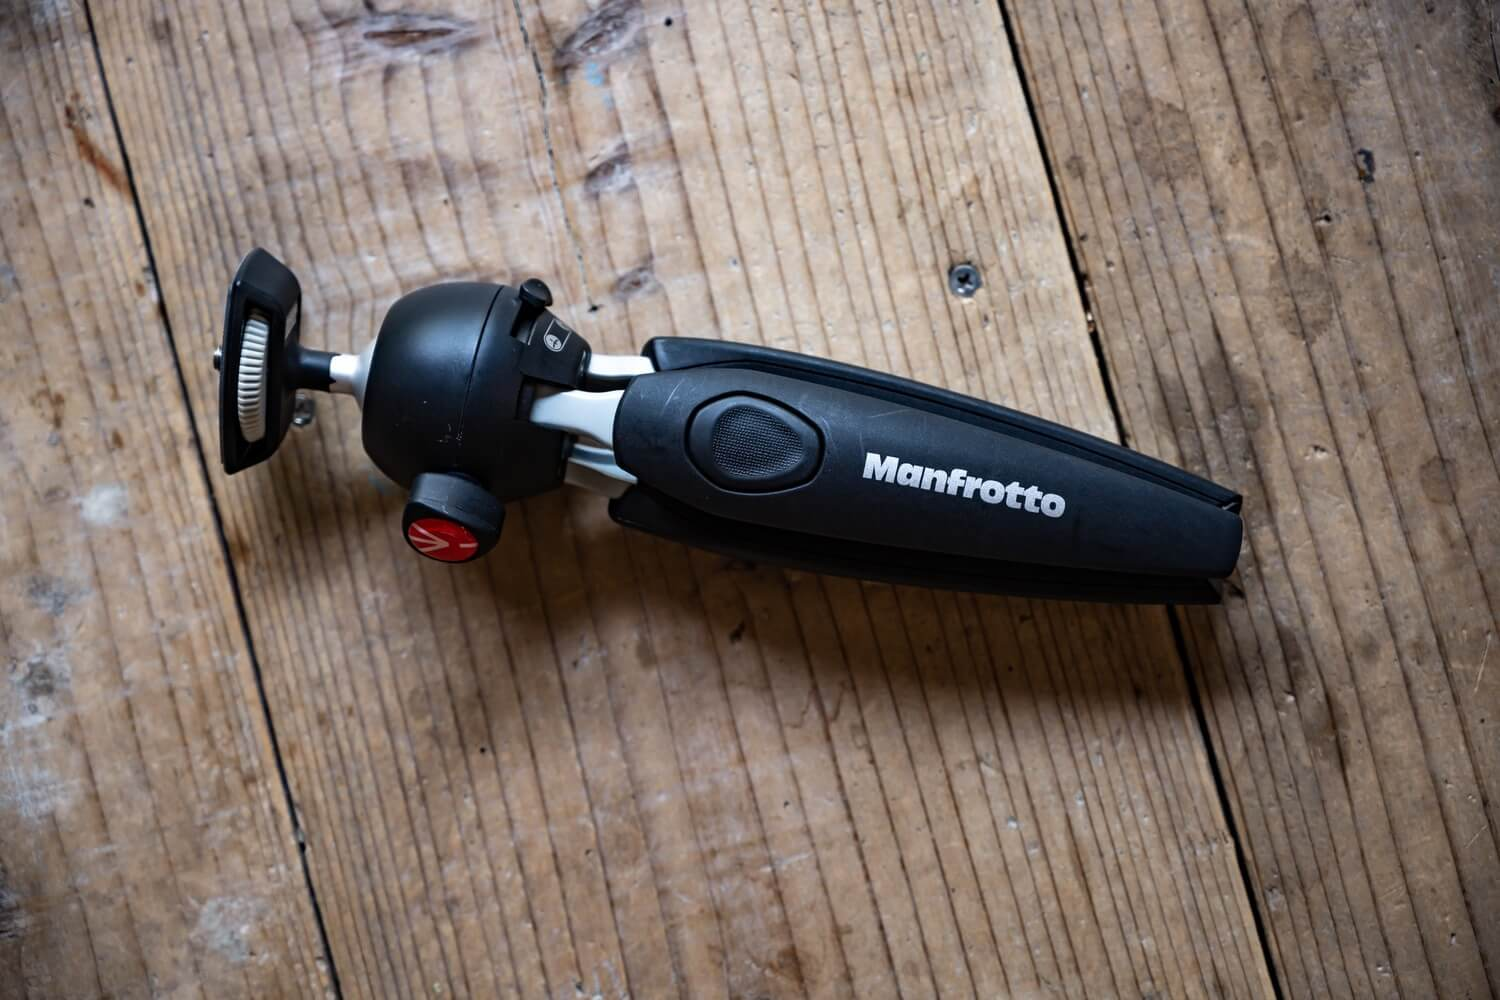 Manfrotto pixi evo3